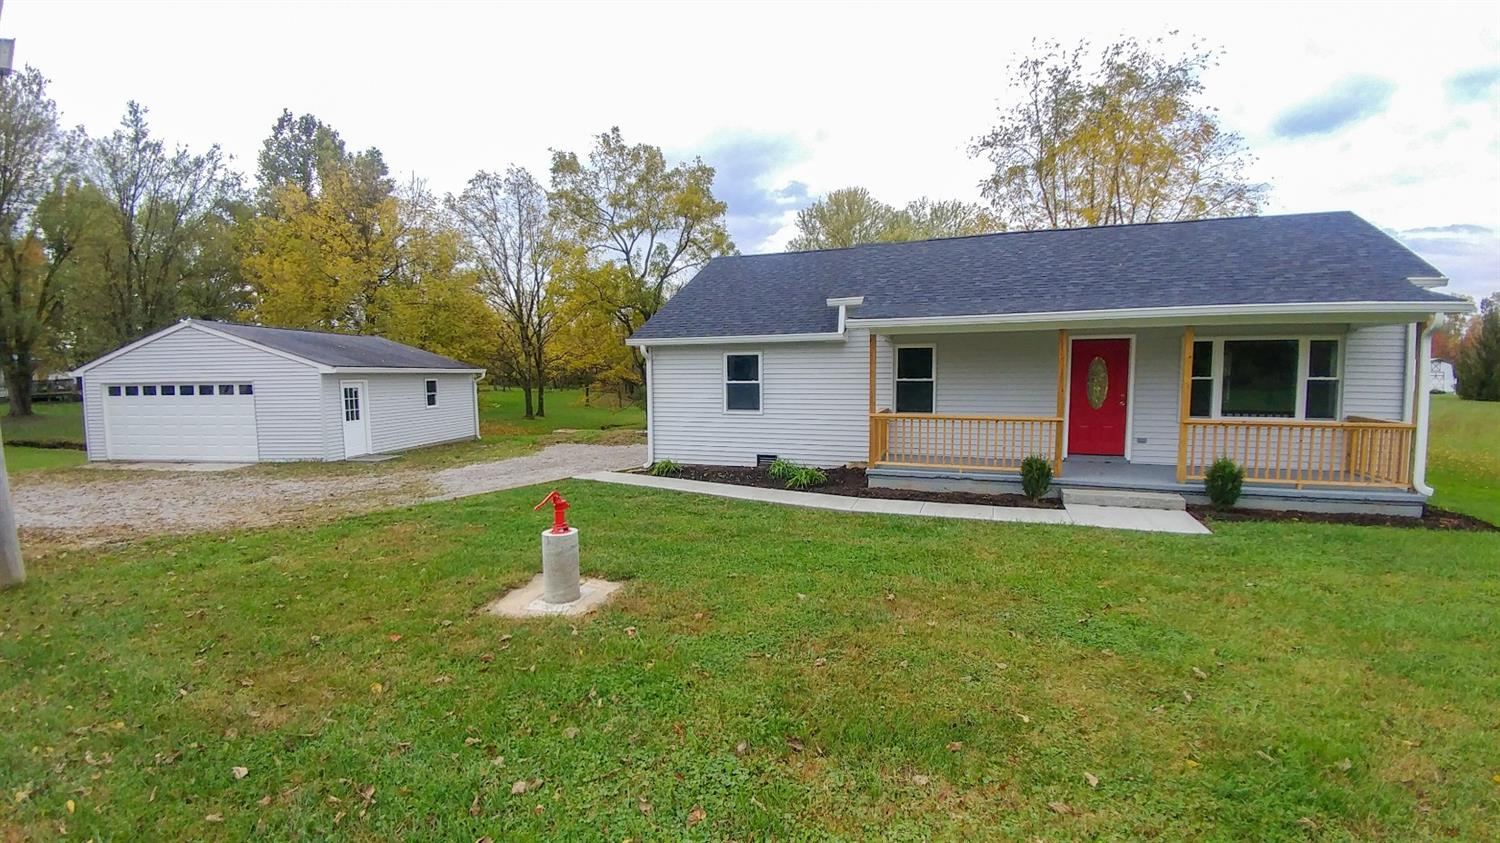 Property for sale at 1615 State Route 133, Franklin Twp,  Ohio 45106